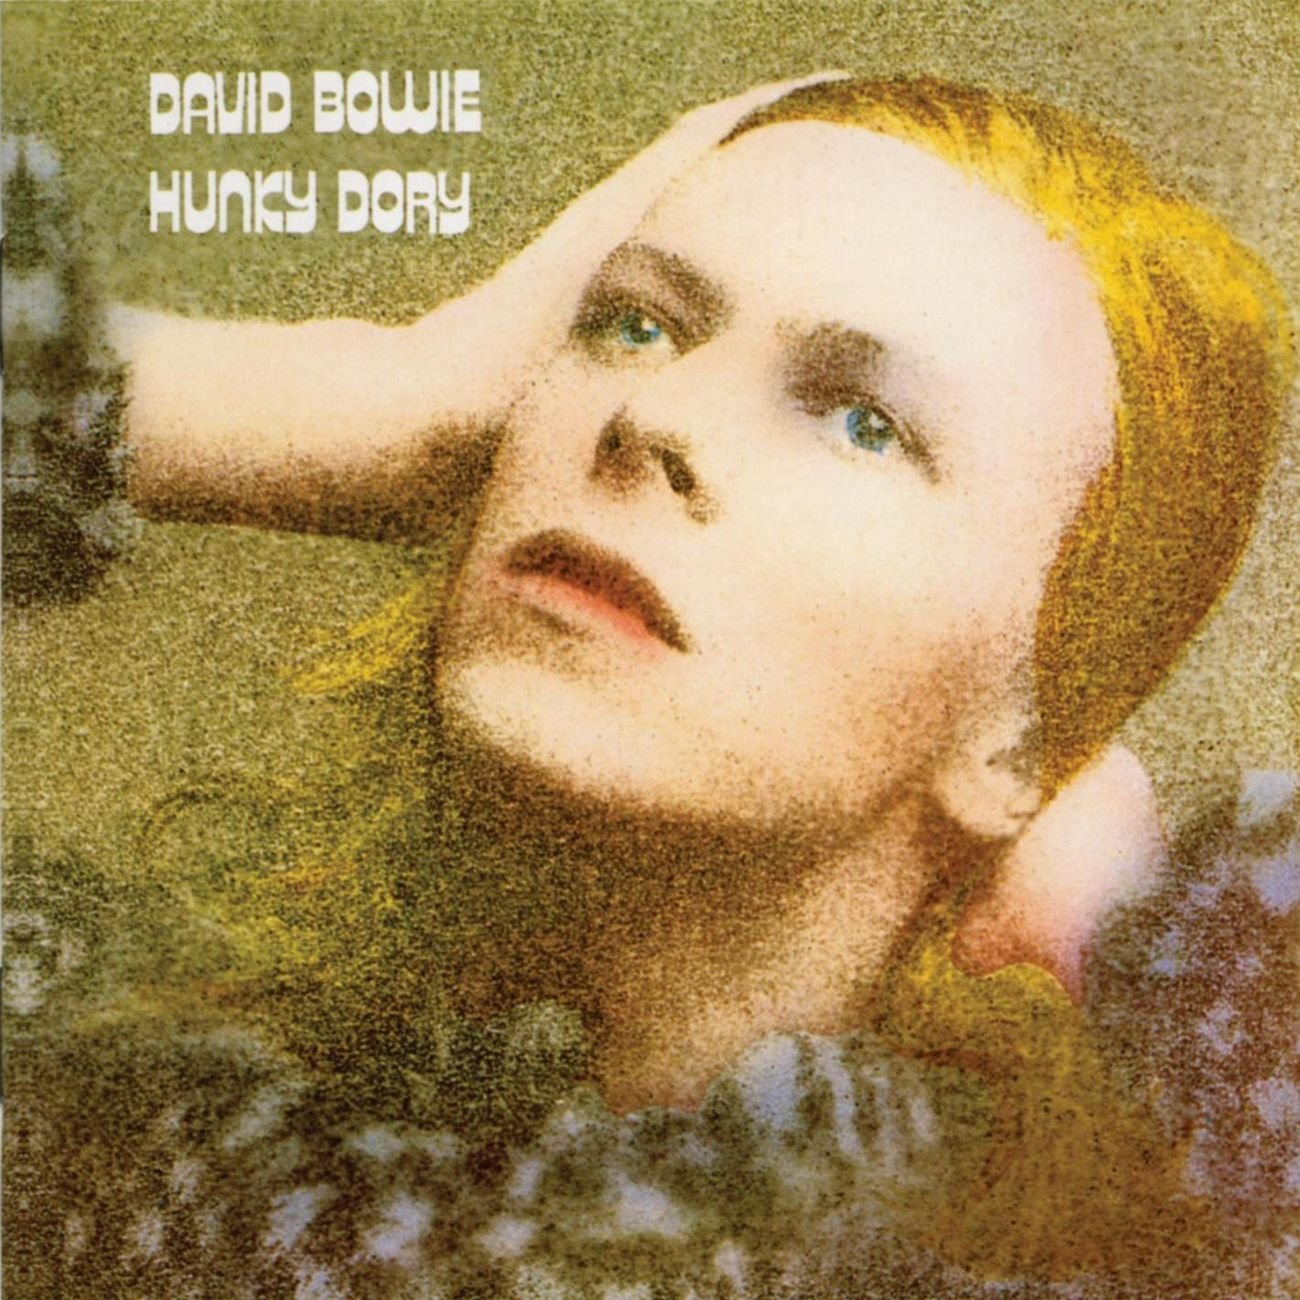 bowie hunky dory The 100 Greatest Albums of All Time